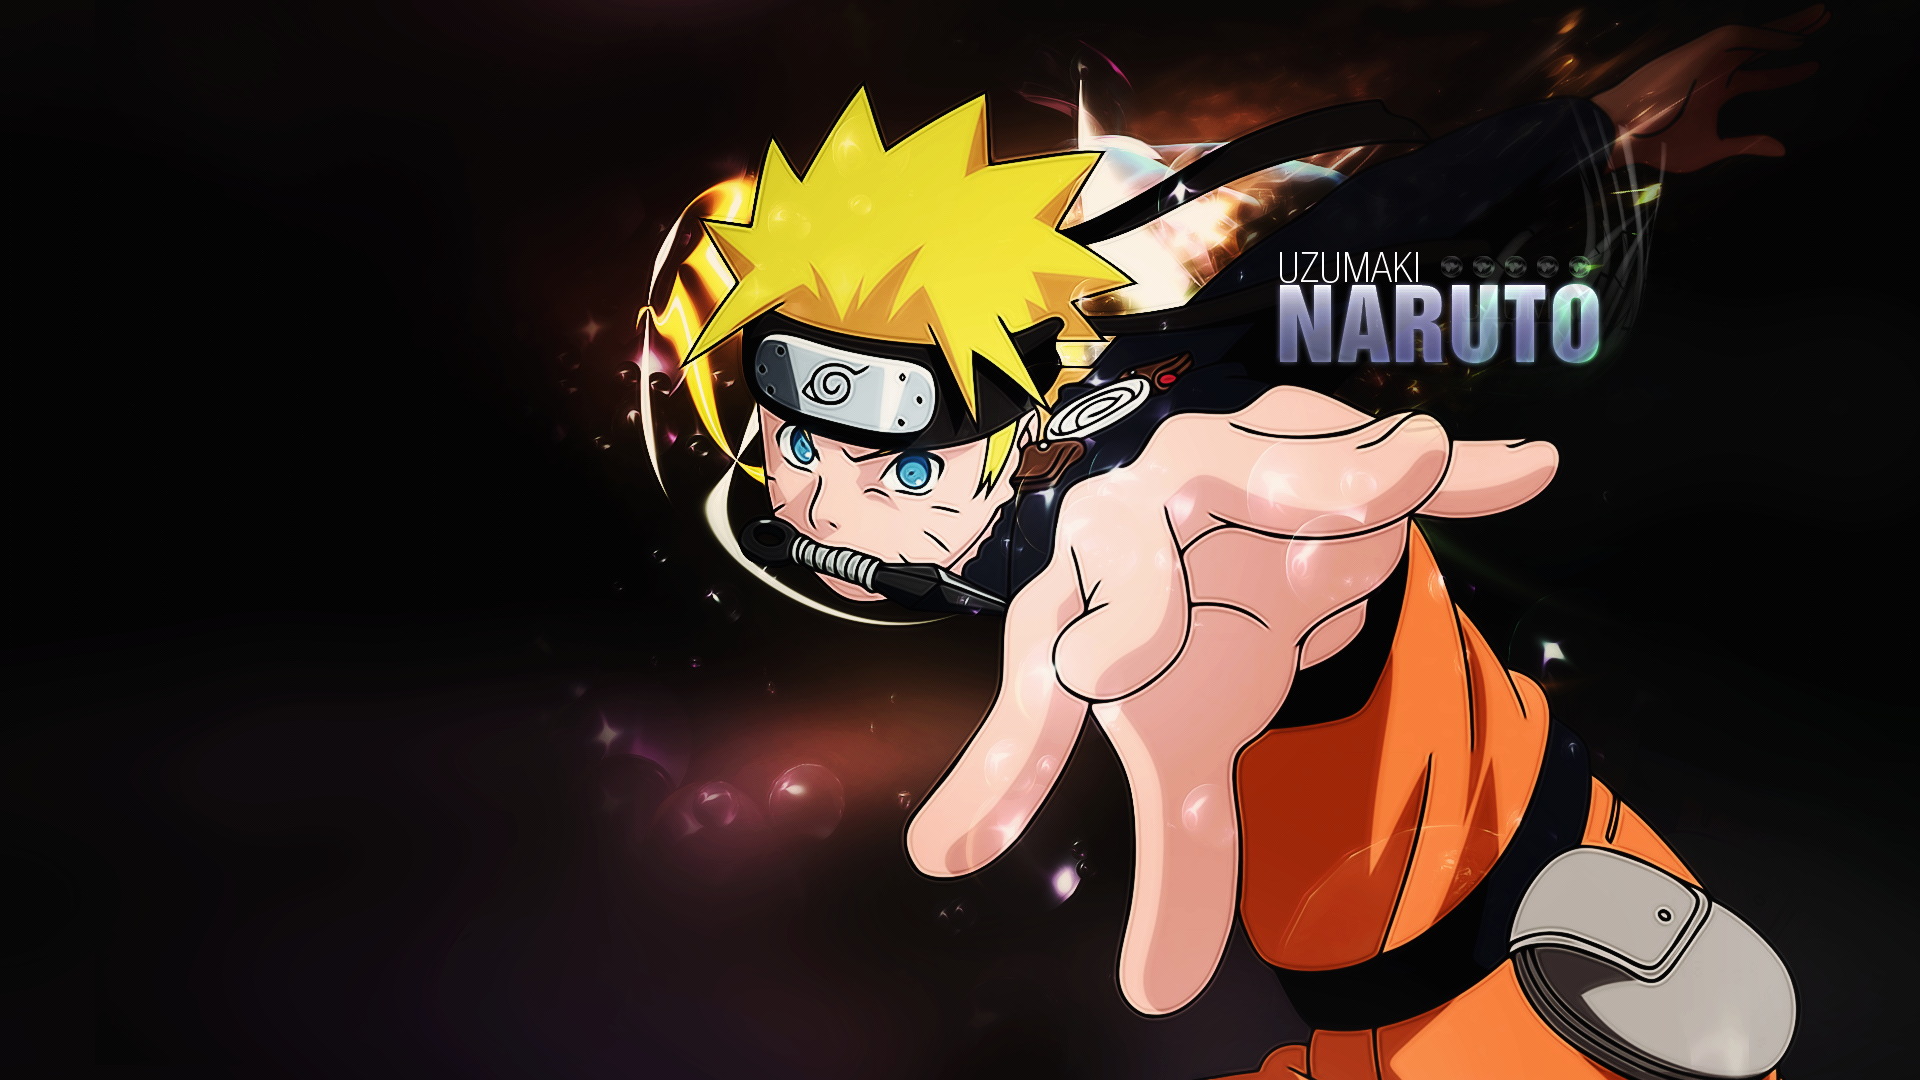 Free Download Awesome Naruto Wallpaper Android 228 Wallpaper